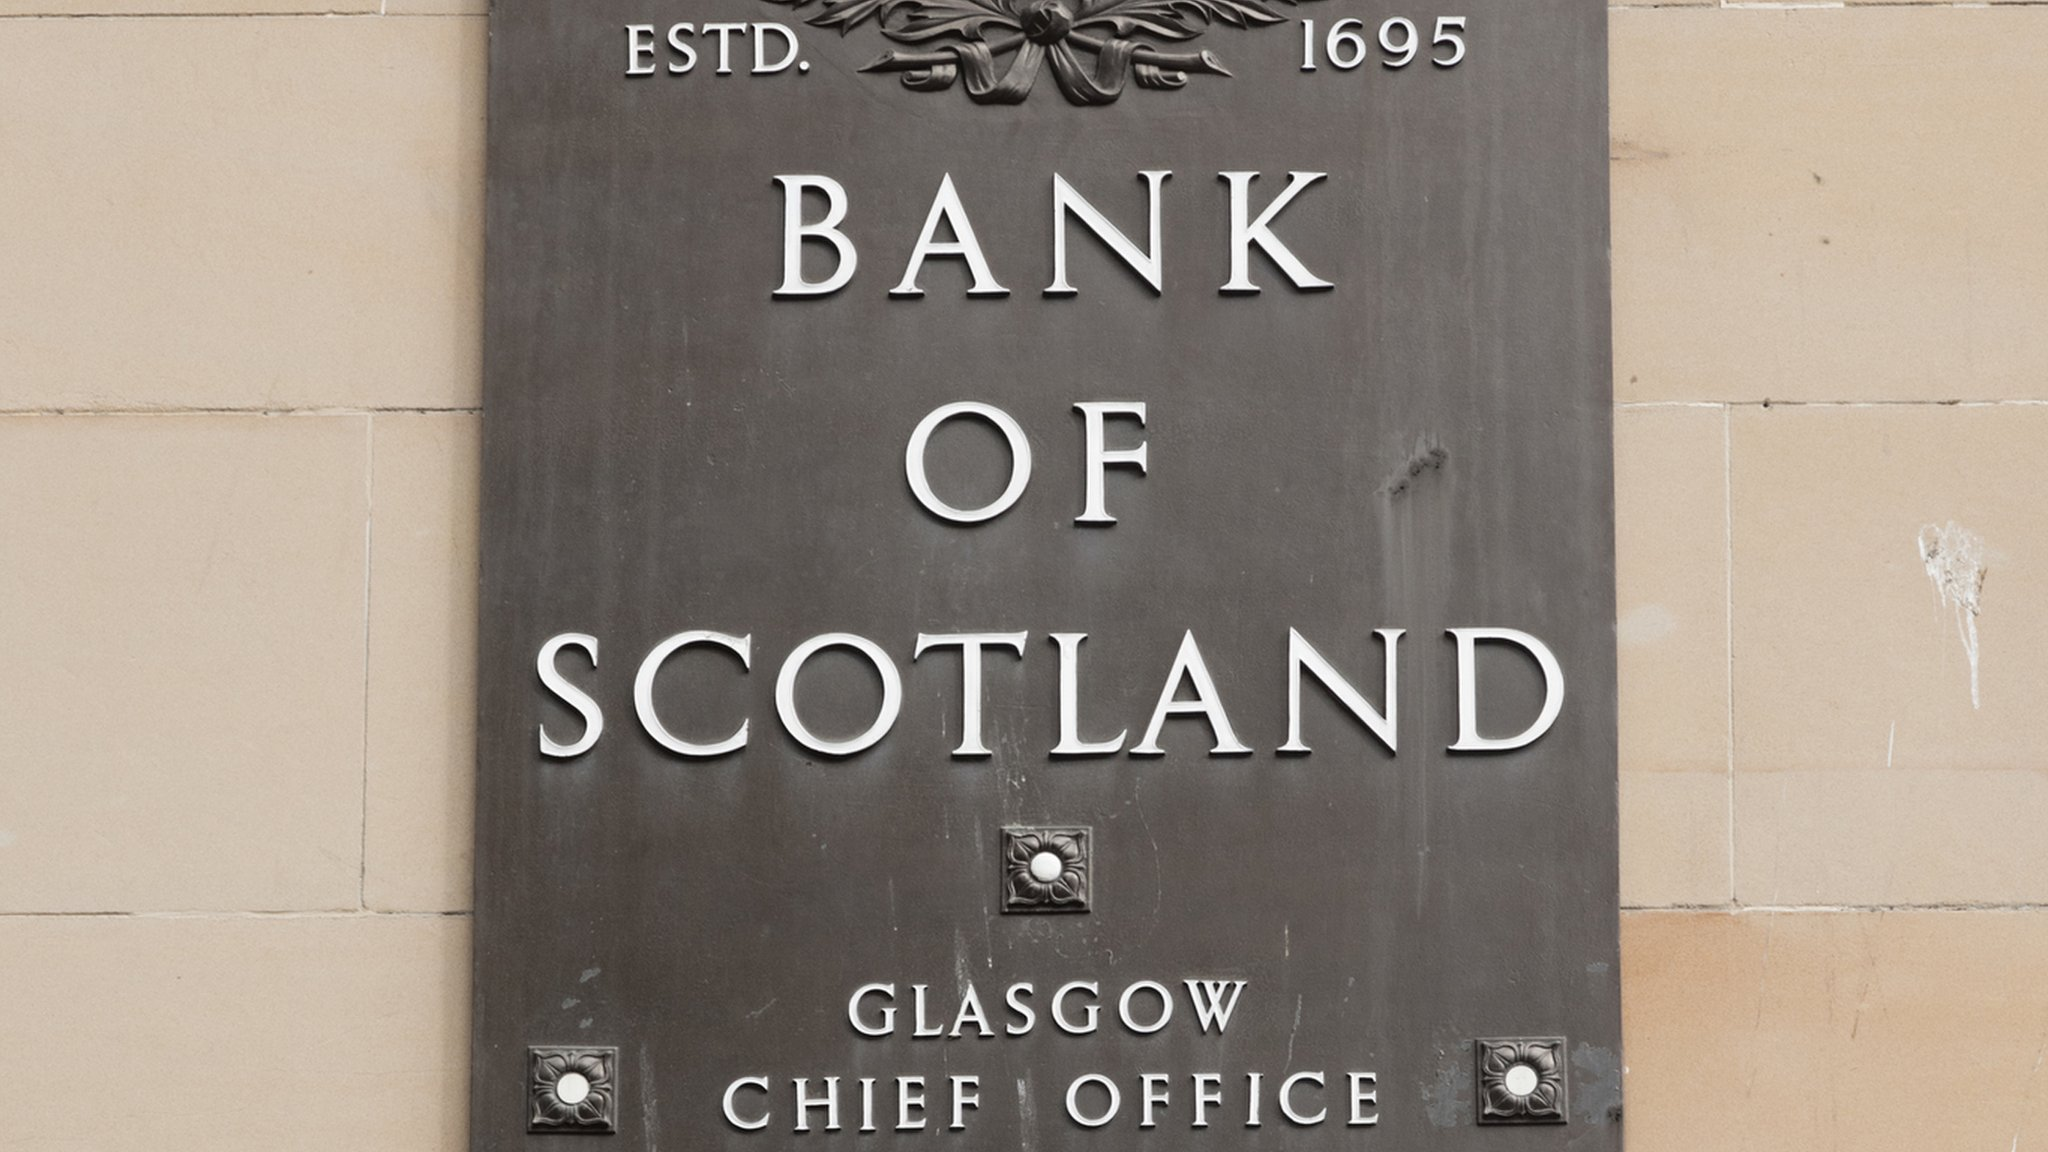 Bank of Scotland receives most complaints - again